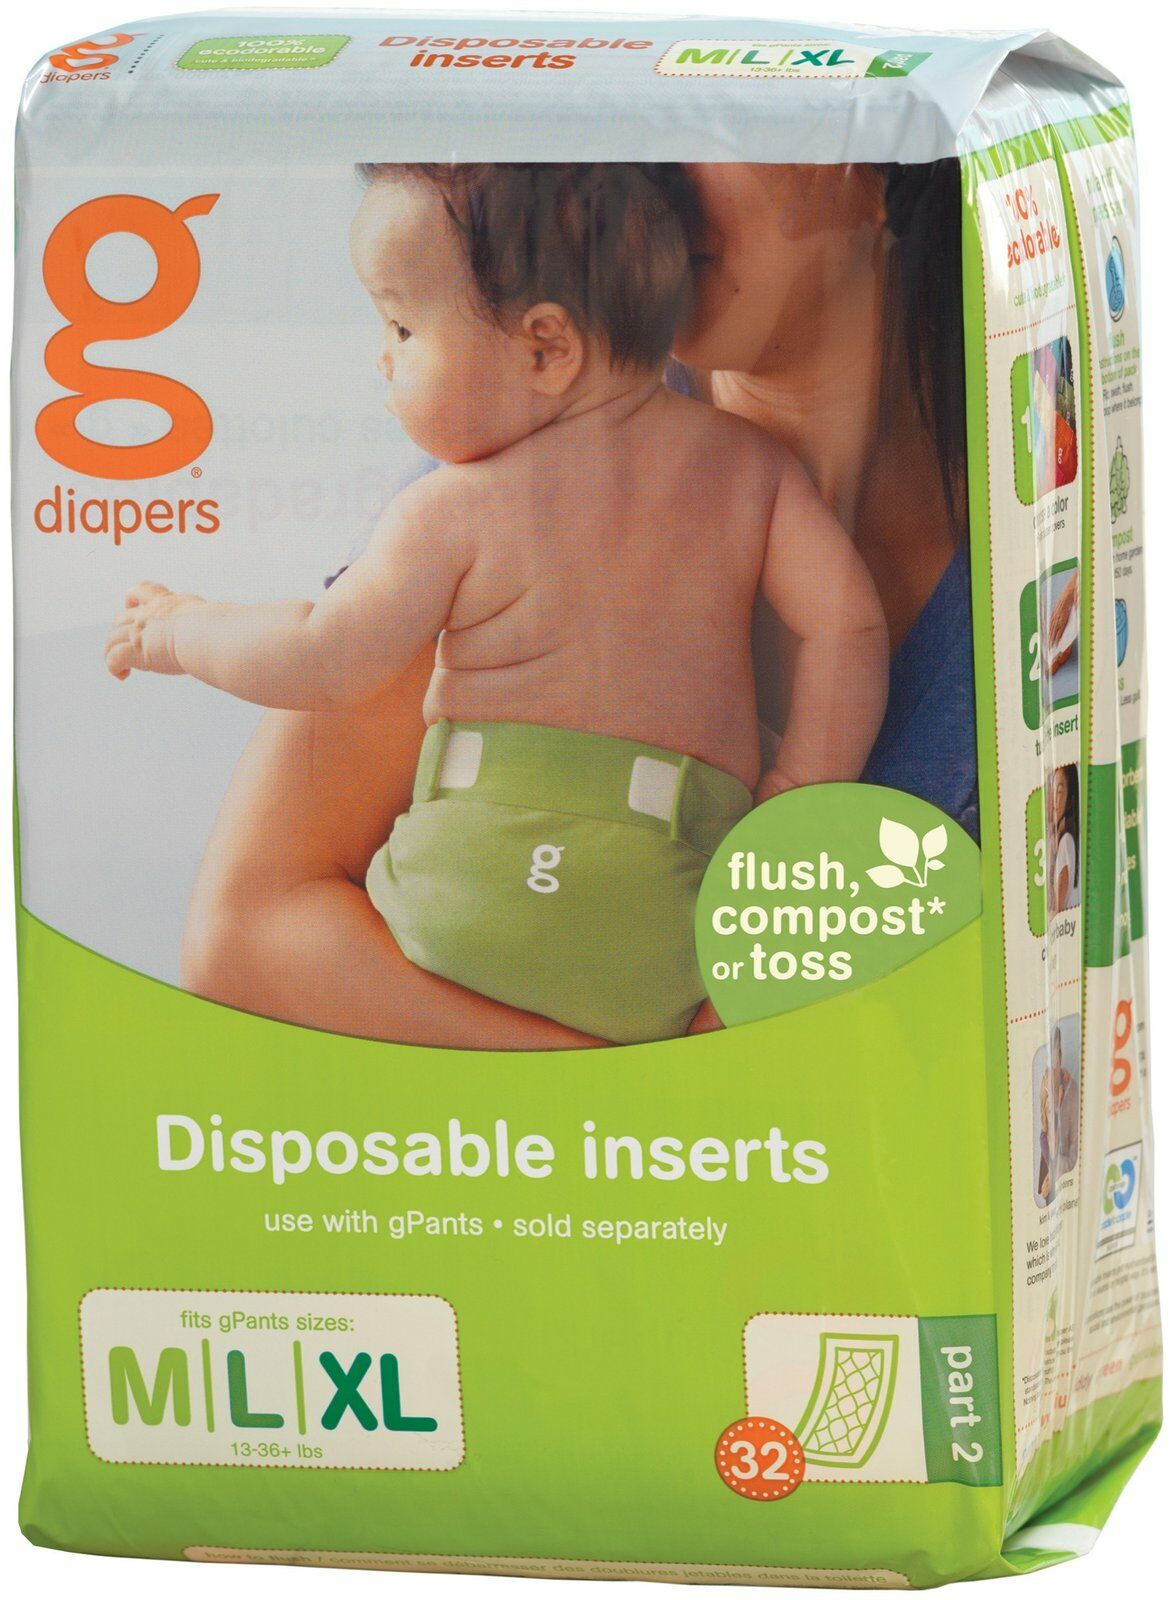 Choosing the correct size huggies disposable diapers buying guide choosing the correct size huggies disposable diapers buying guide nvjuhfo Image collections